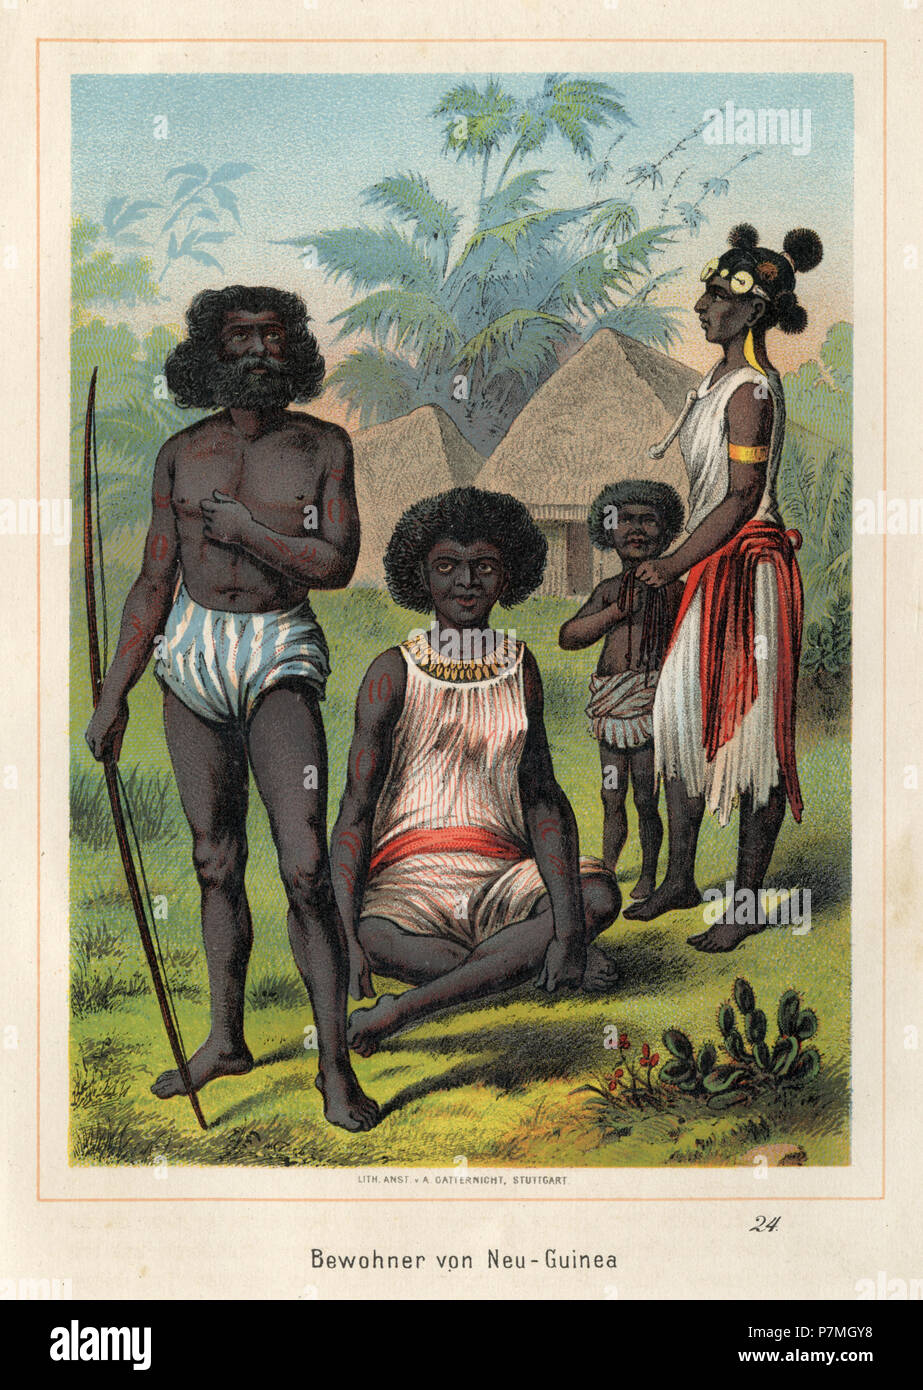 Residents of New Guinea, - Stock Image